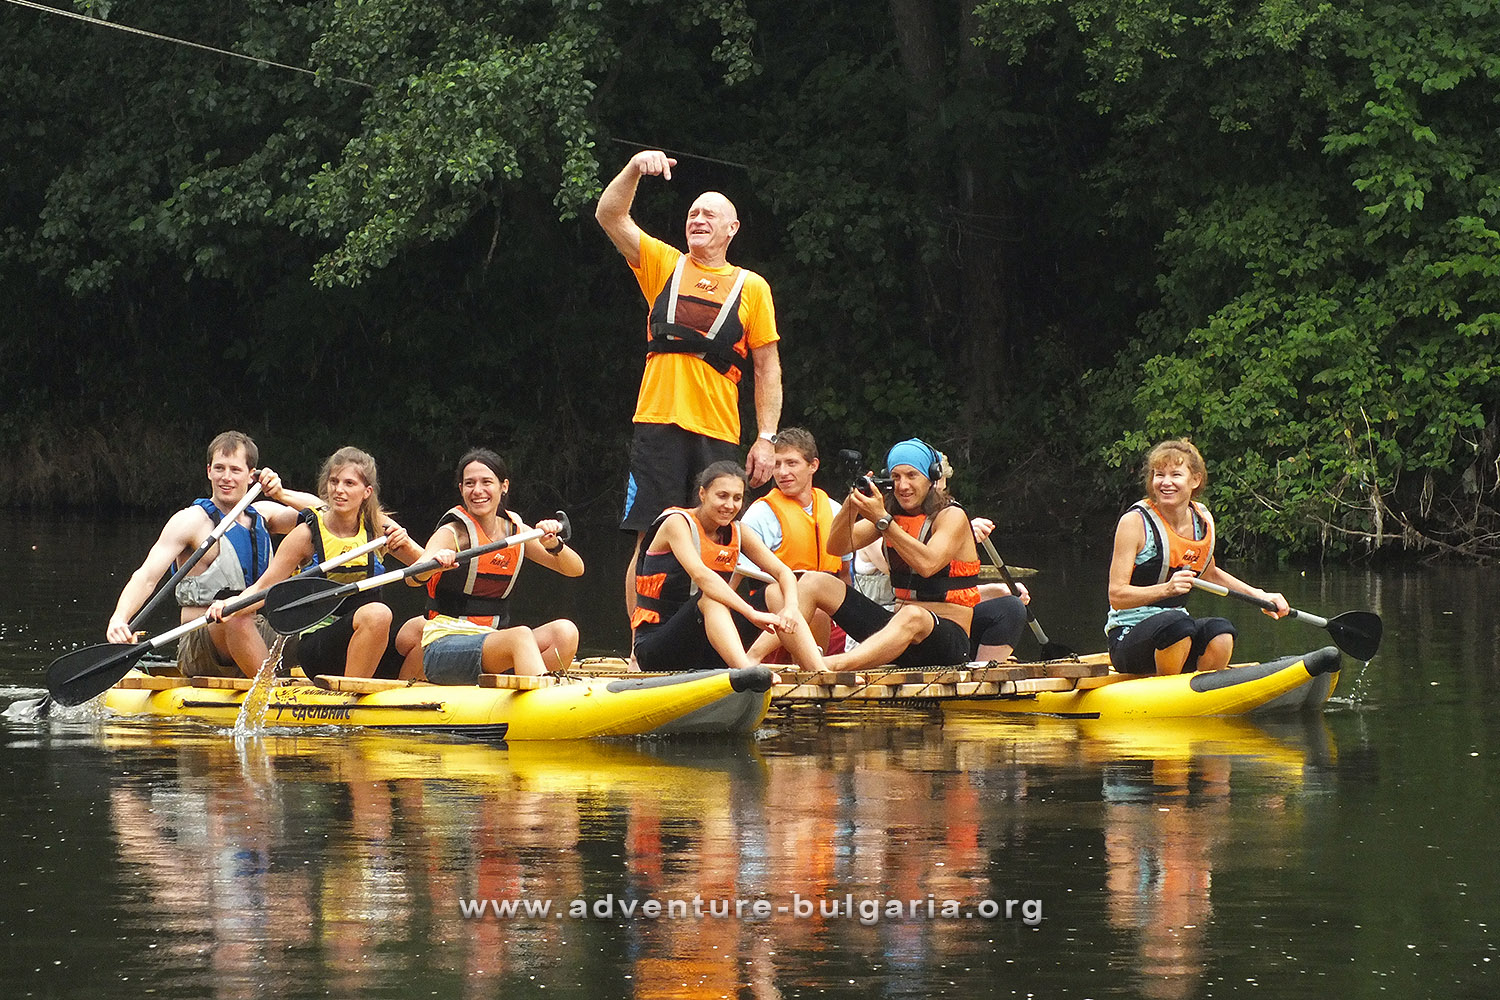 Team Building with kayaks on the Yantra River, Bulgaria